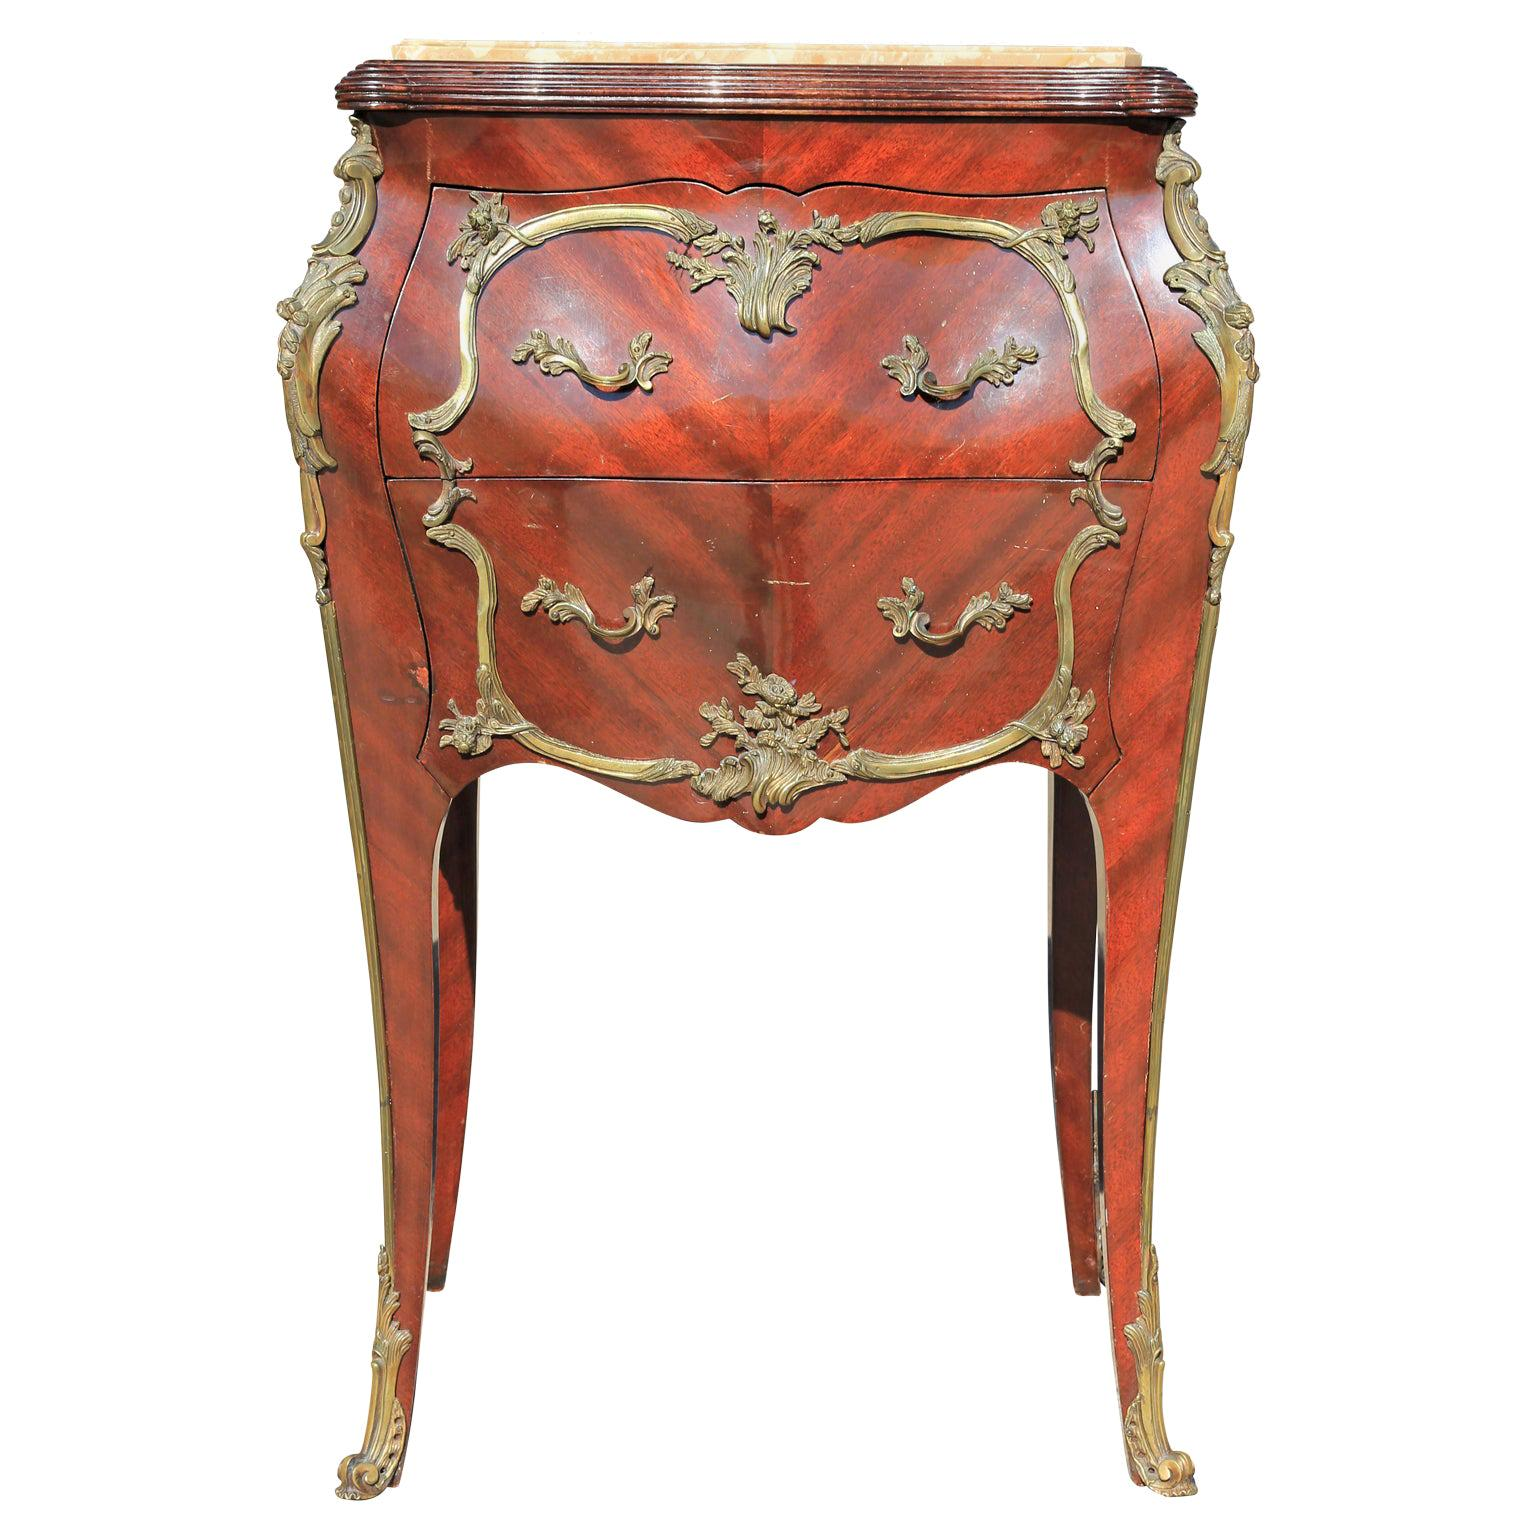 Small Ornate Ormolu Mounted French Louis XVI Style Bombé Commode or Chest